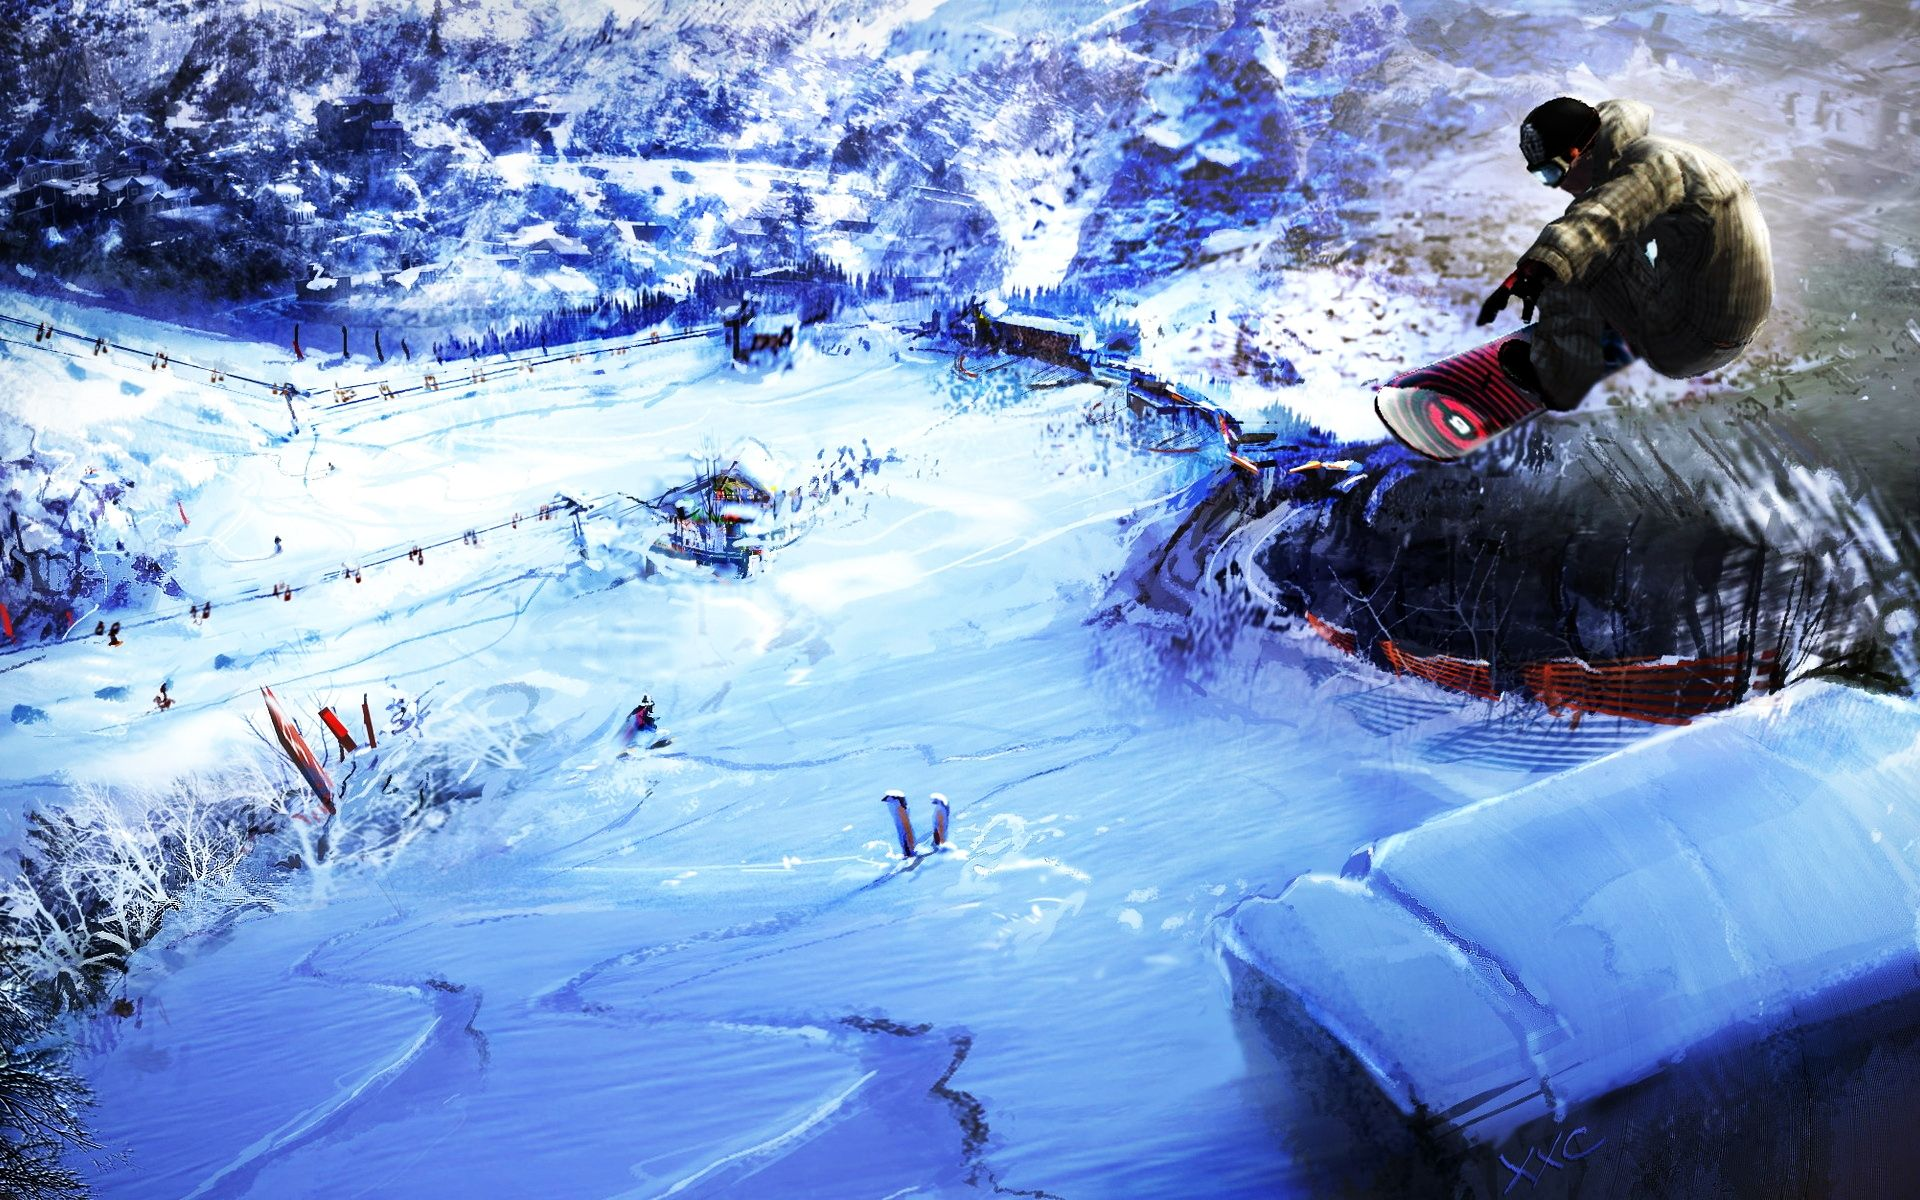 Snowboarding Wallpaper Hd Wallpapers (High Definition